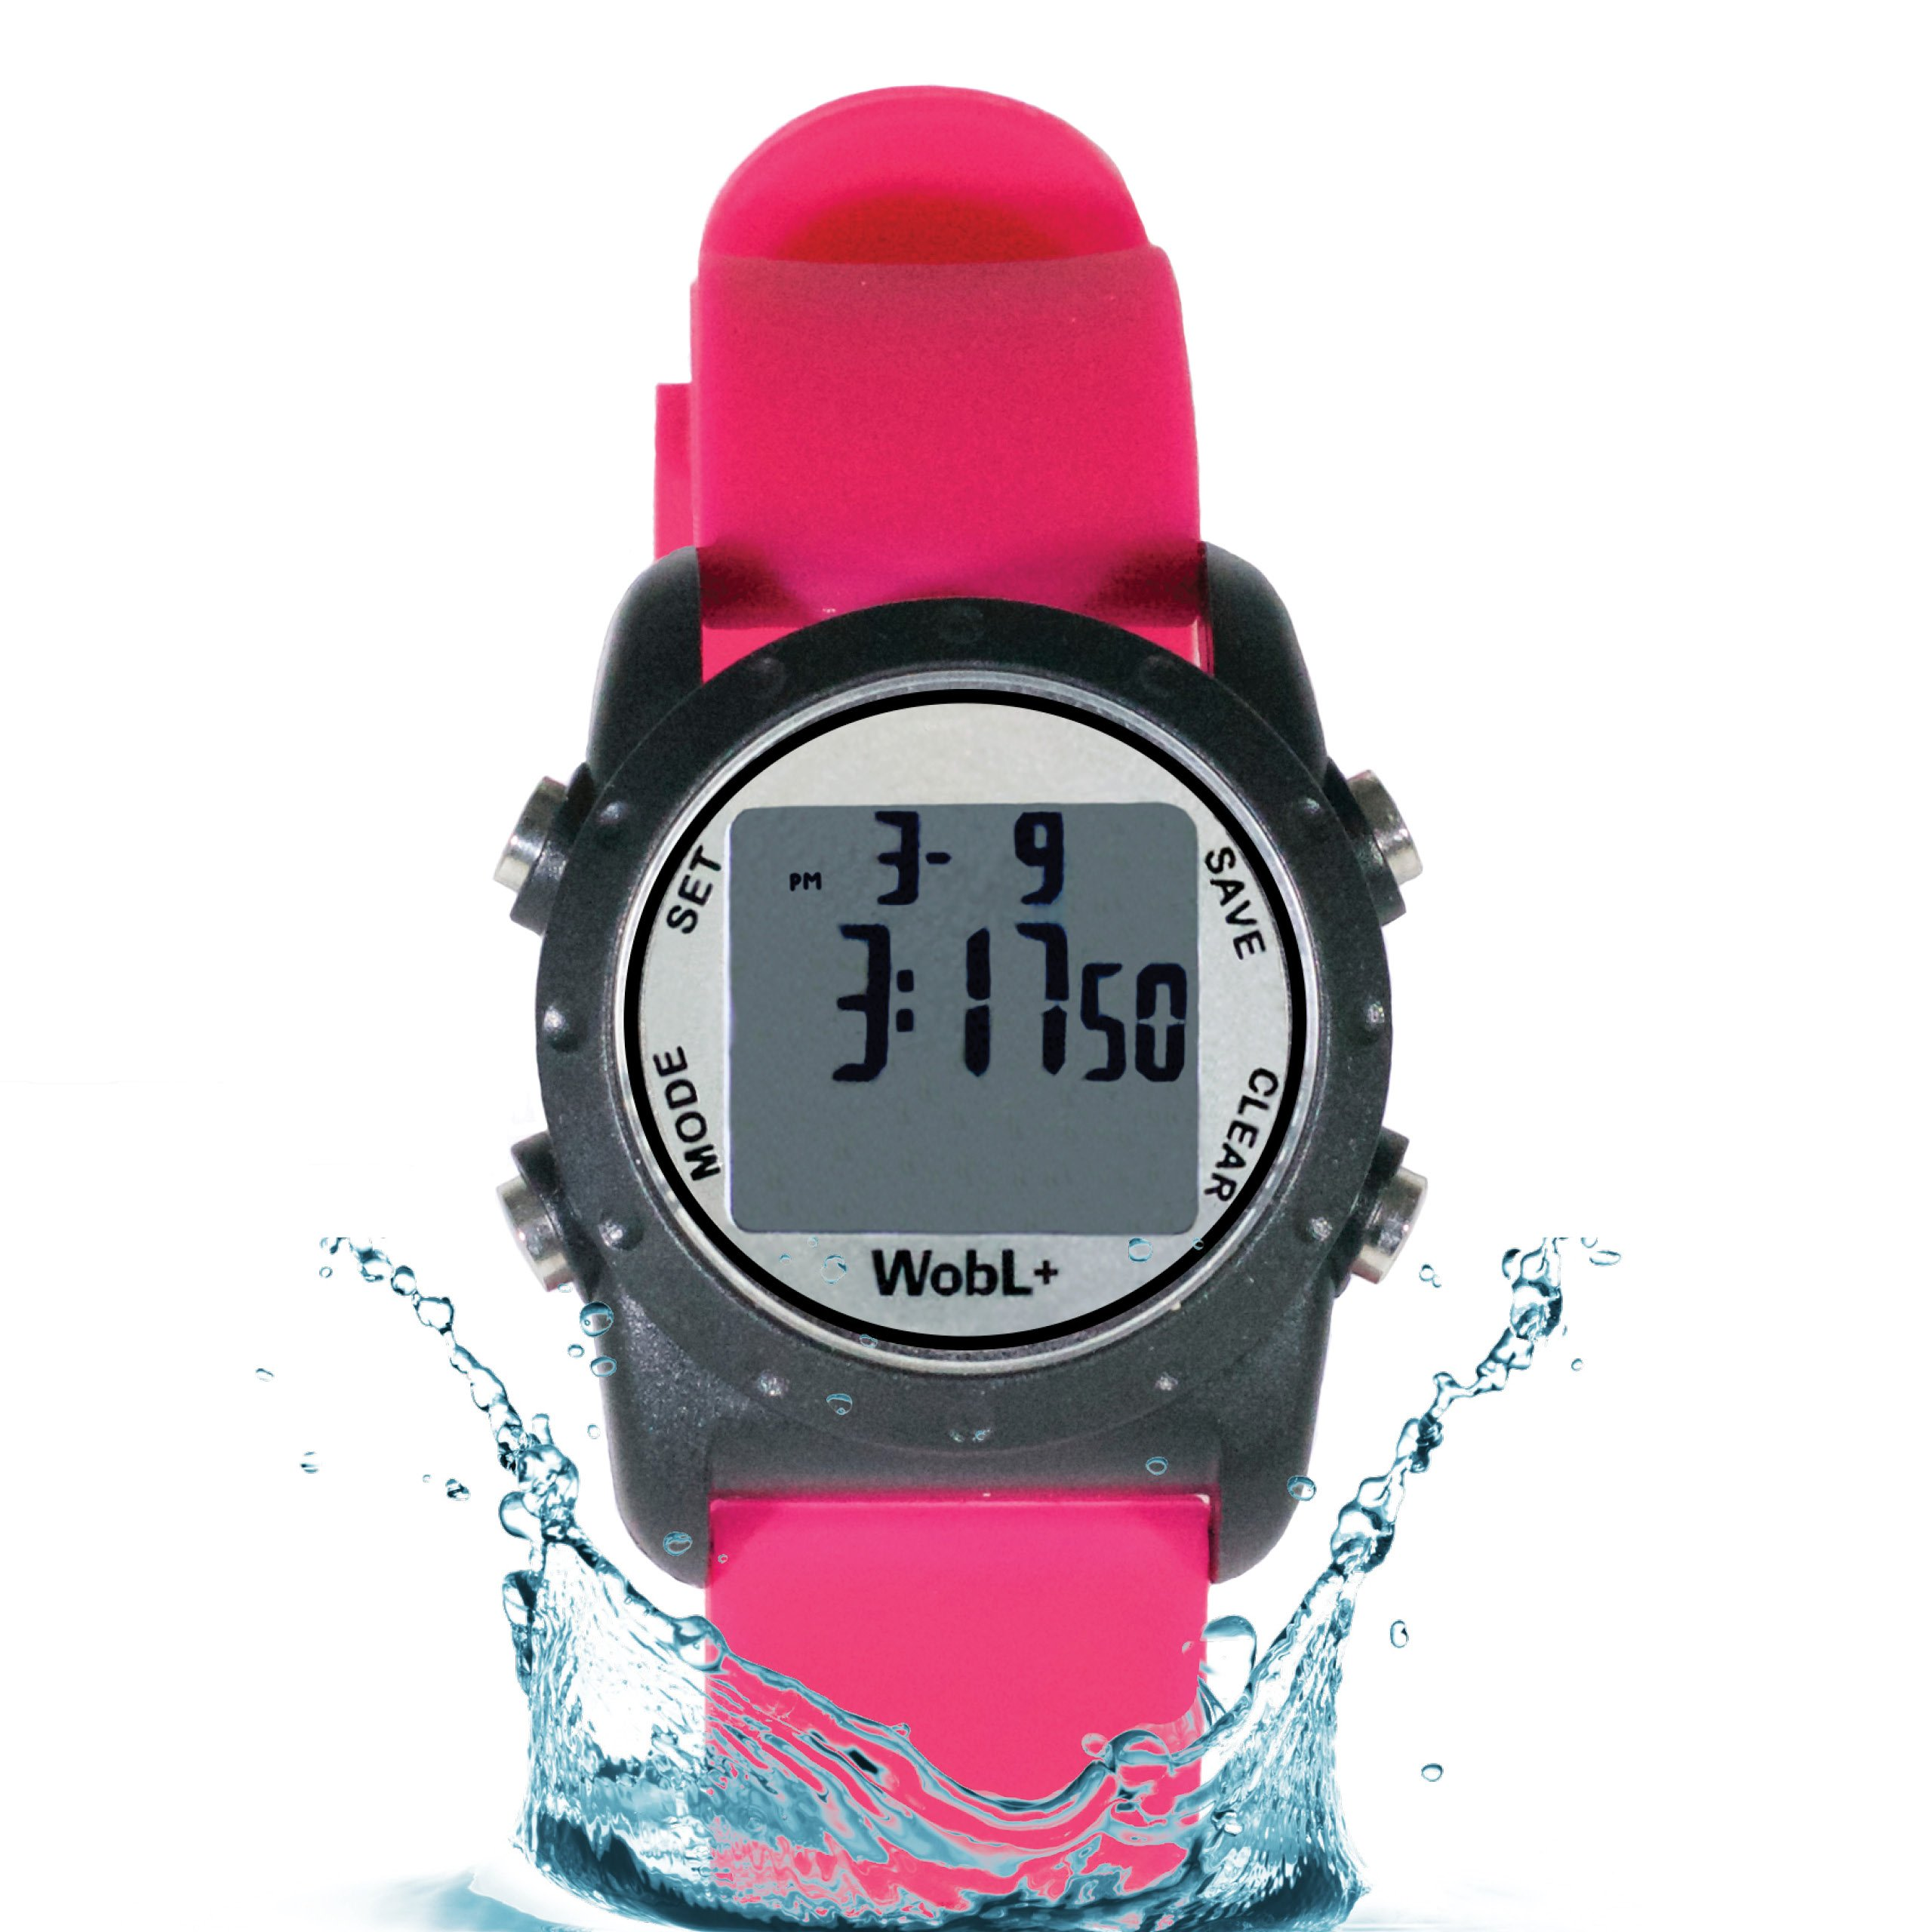 WobL+ Waterproof Vibrating Watch (PINK), 9 Alarms, Potty Reminder, Pill Reminder